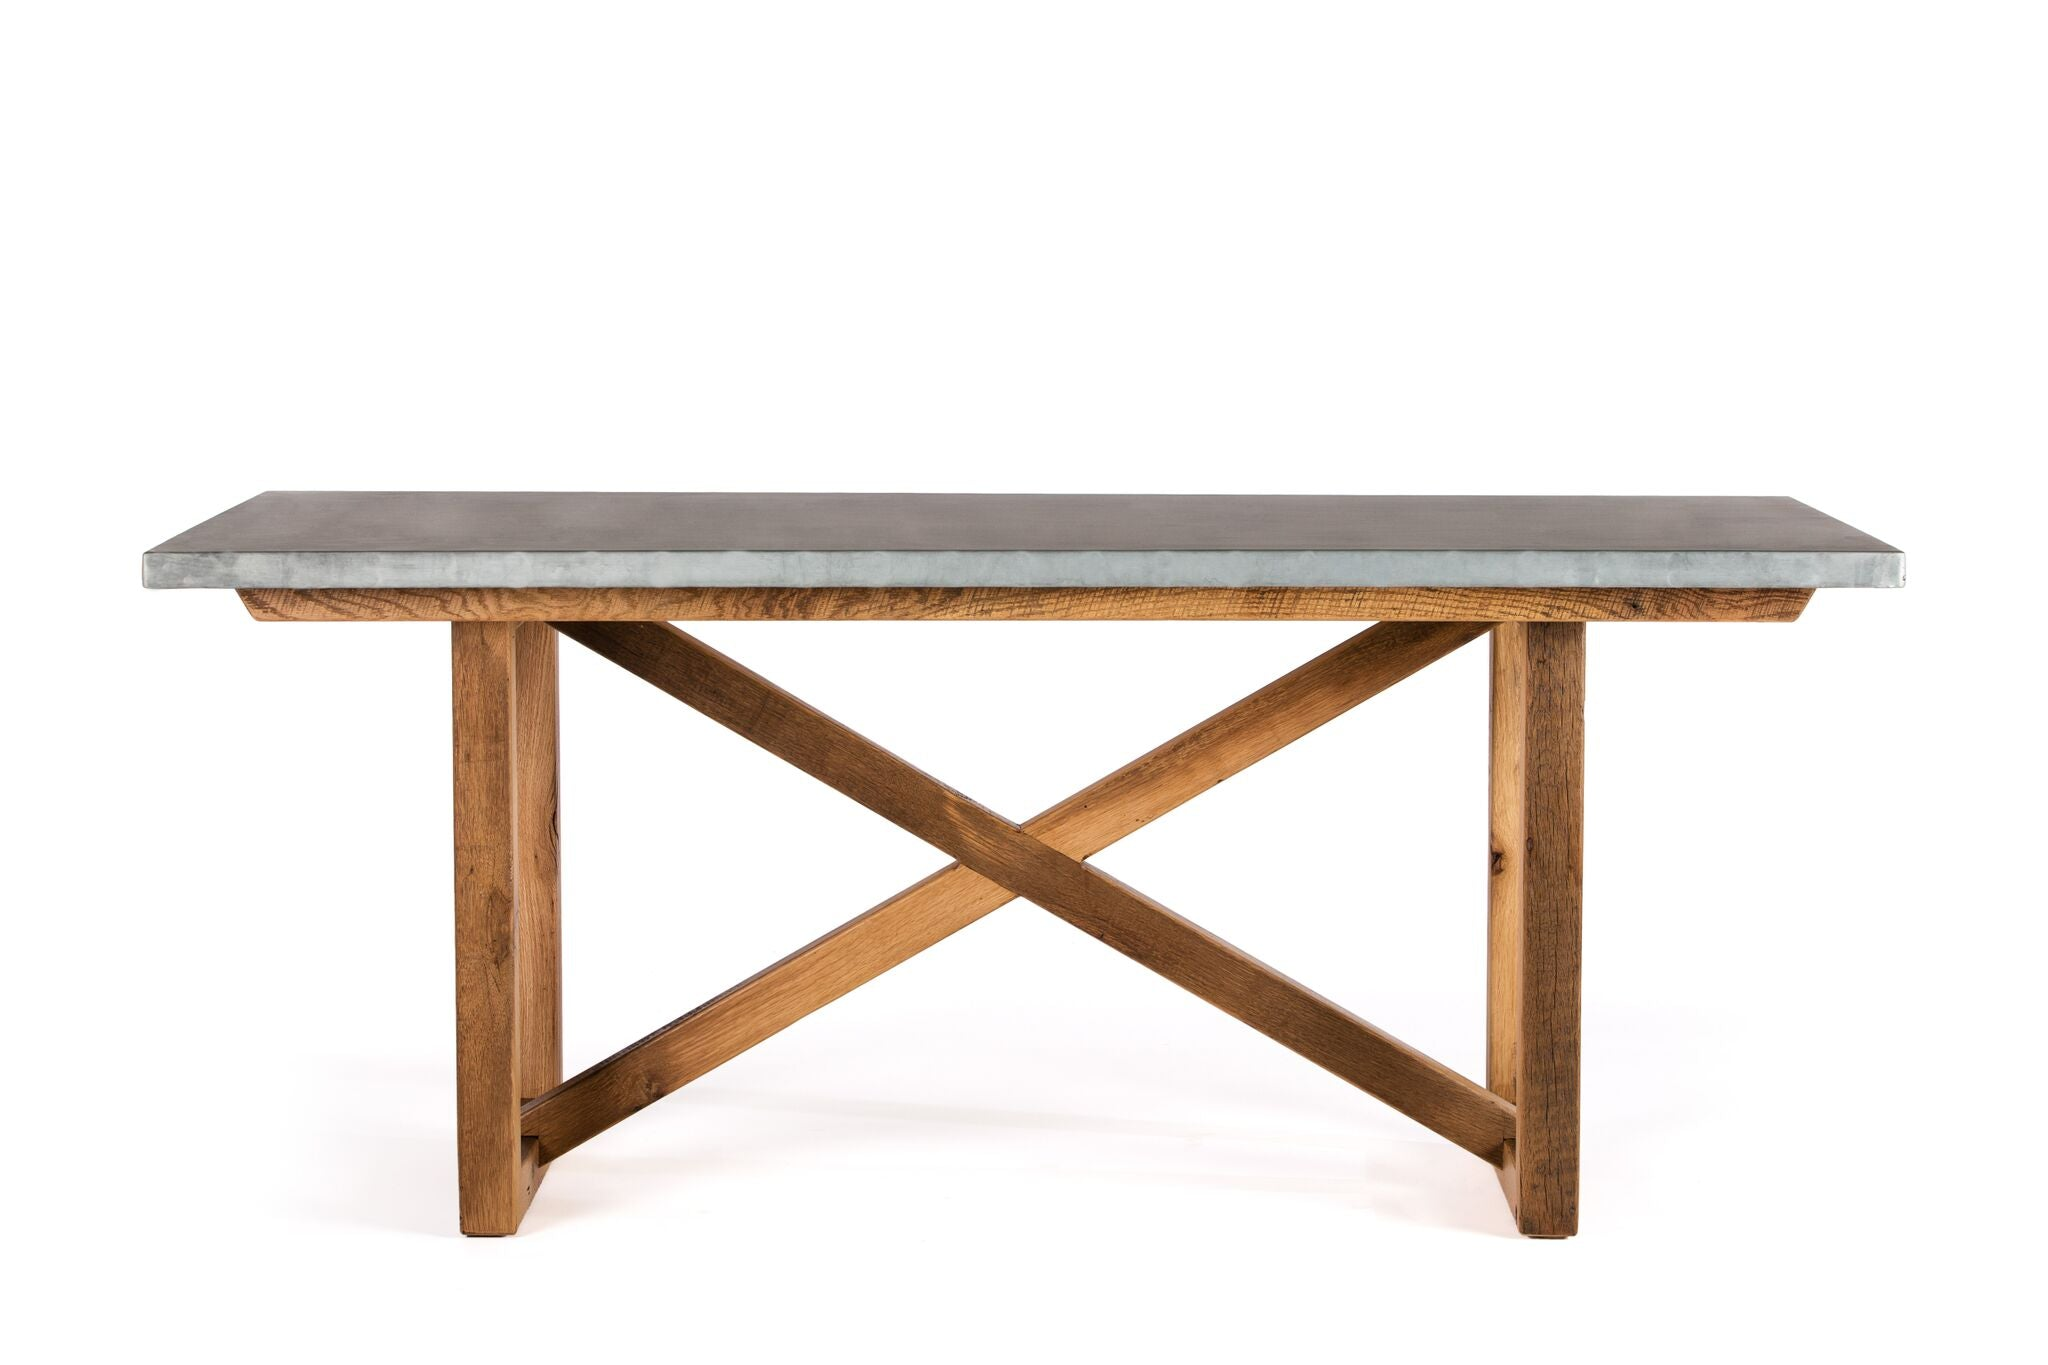 "Zinc Rectangular Table | Astor Table | CLASSIC | Weathered Grey on Reclaimed Oak | CUSTOM SIZE 72""L 35""W 30""H 